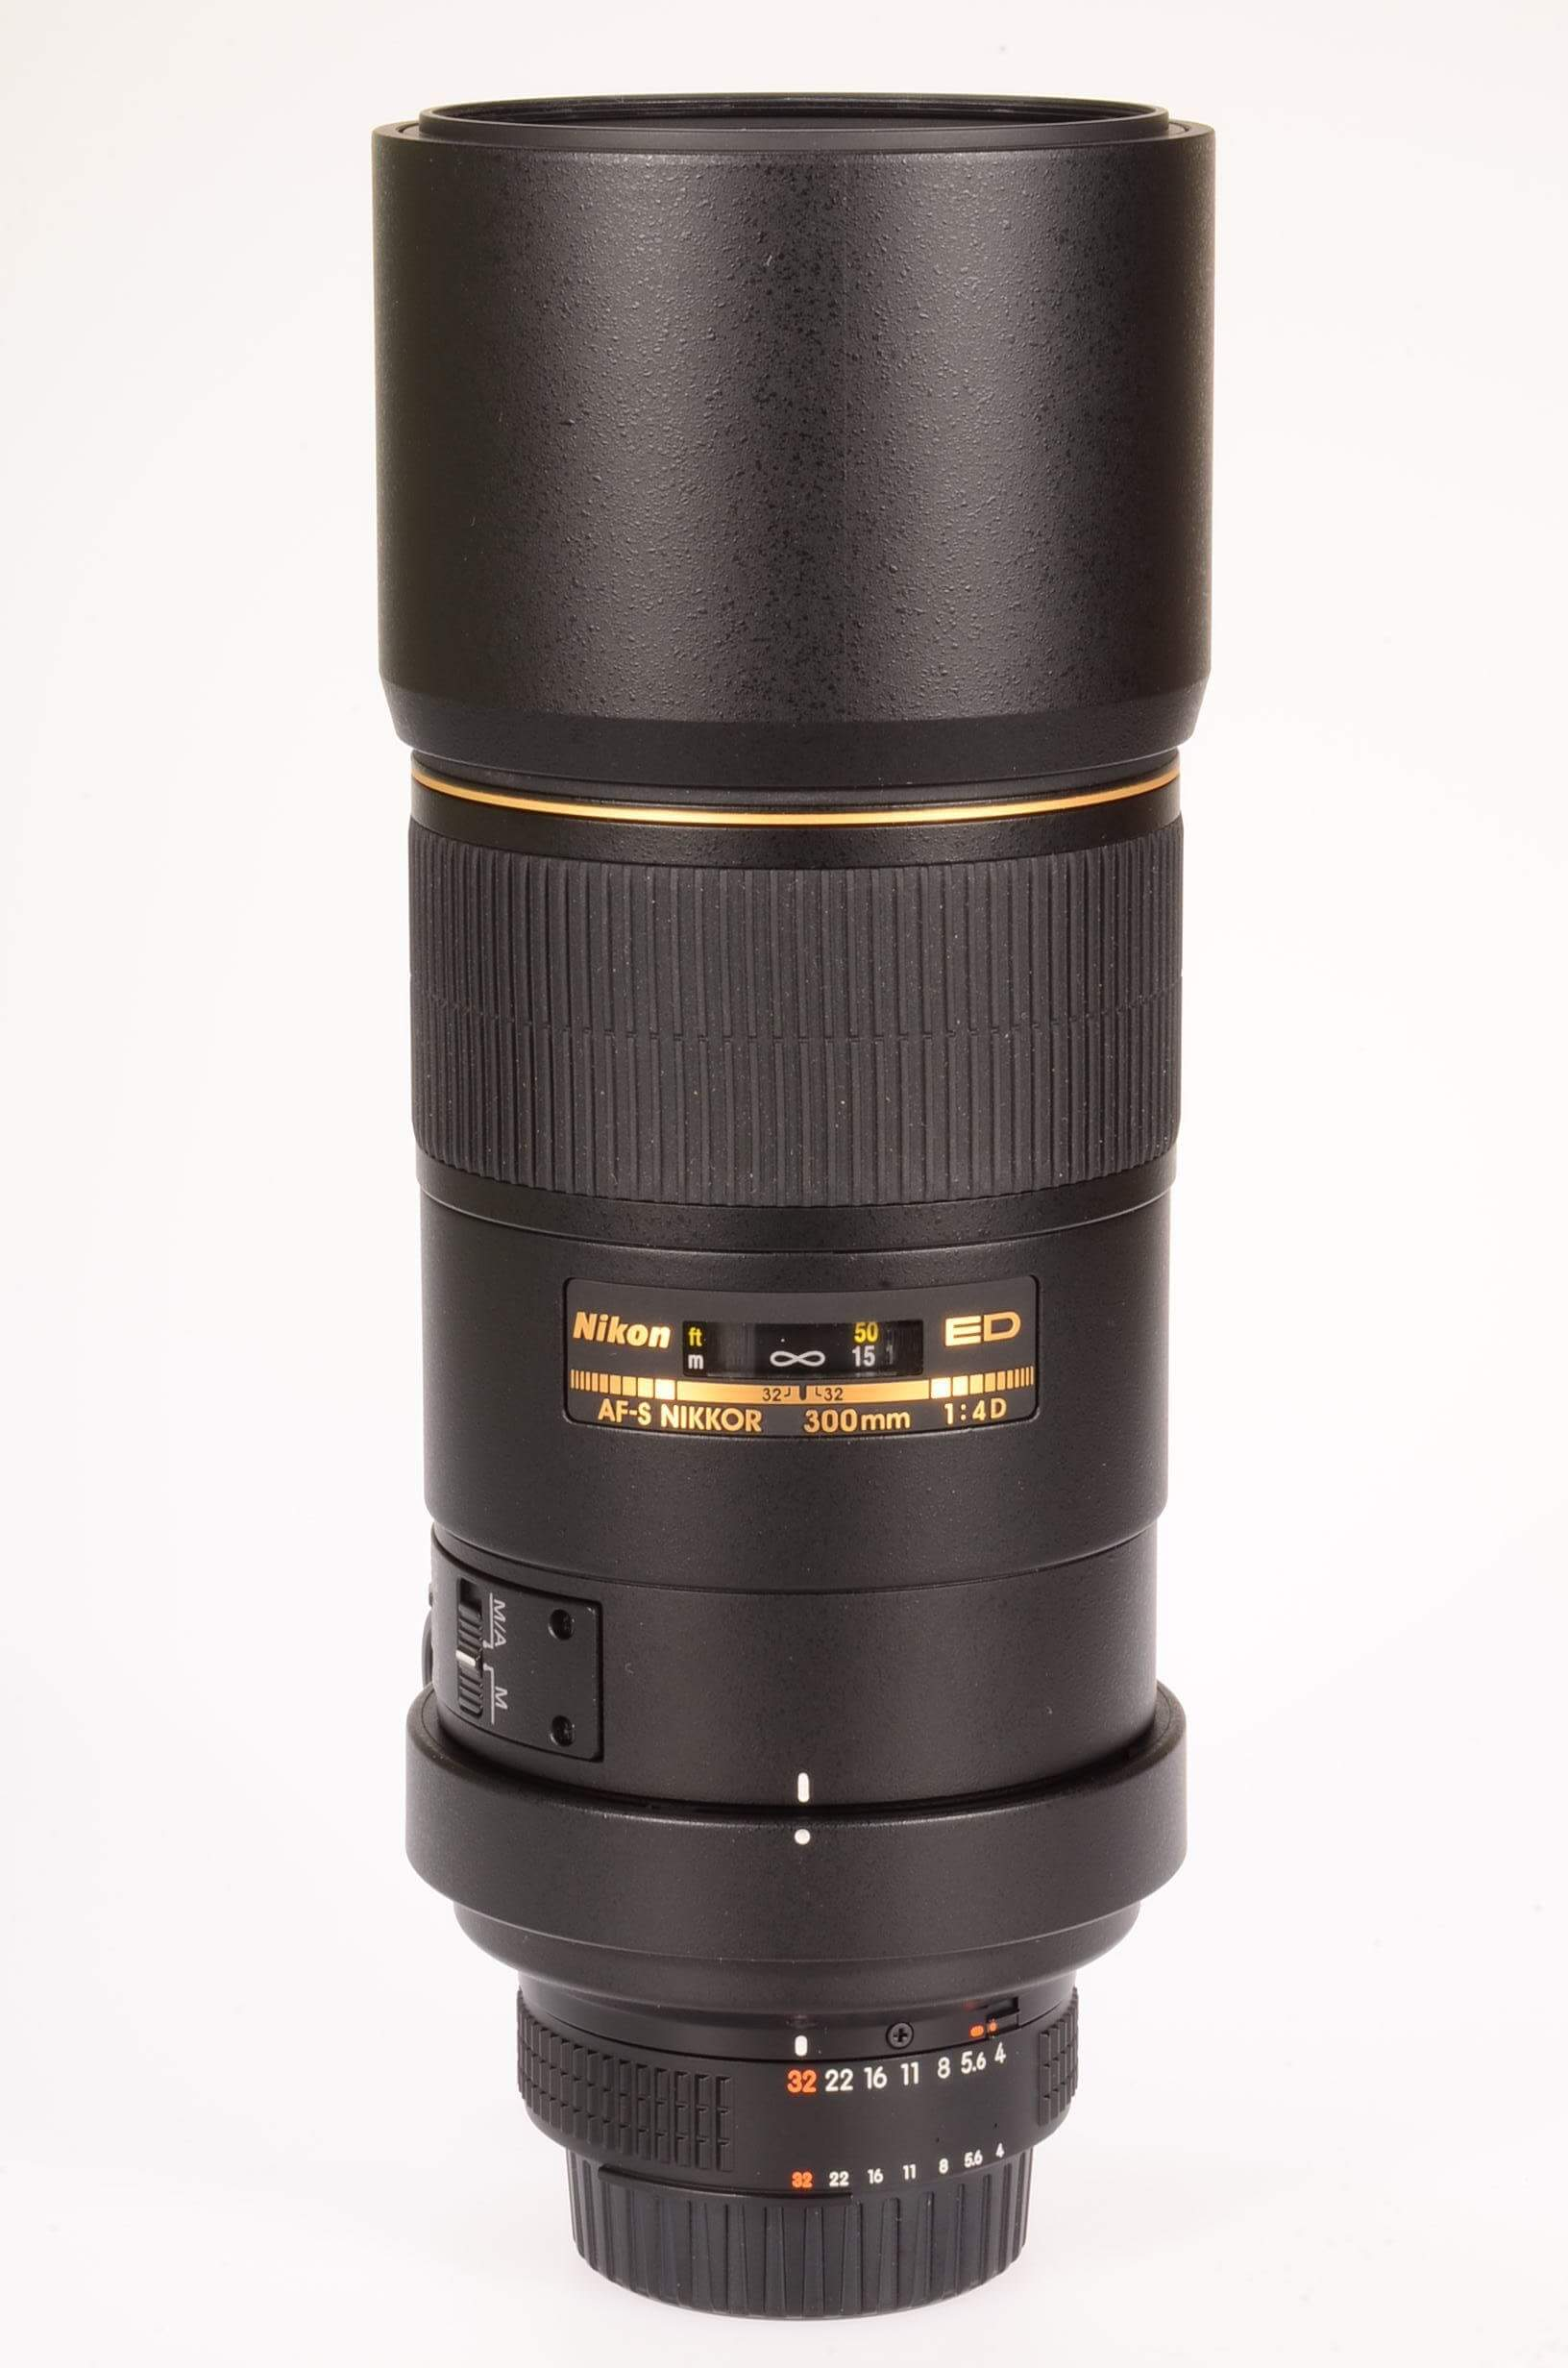 Nikon 300mm f4 AF-S IF ED, boxed and 100% mint!